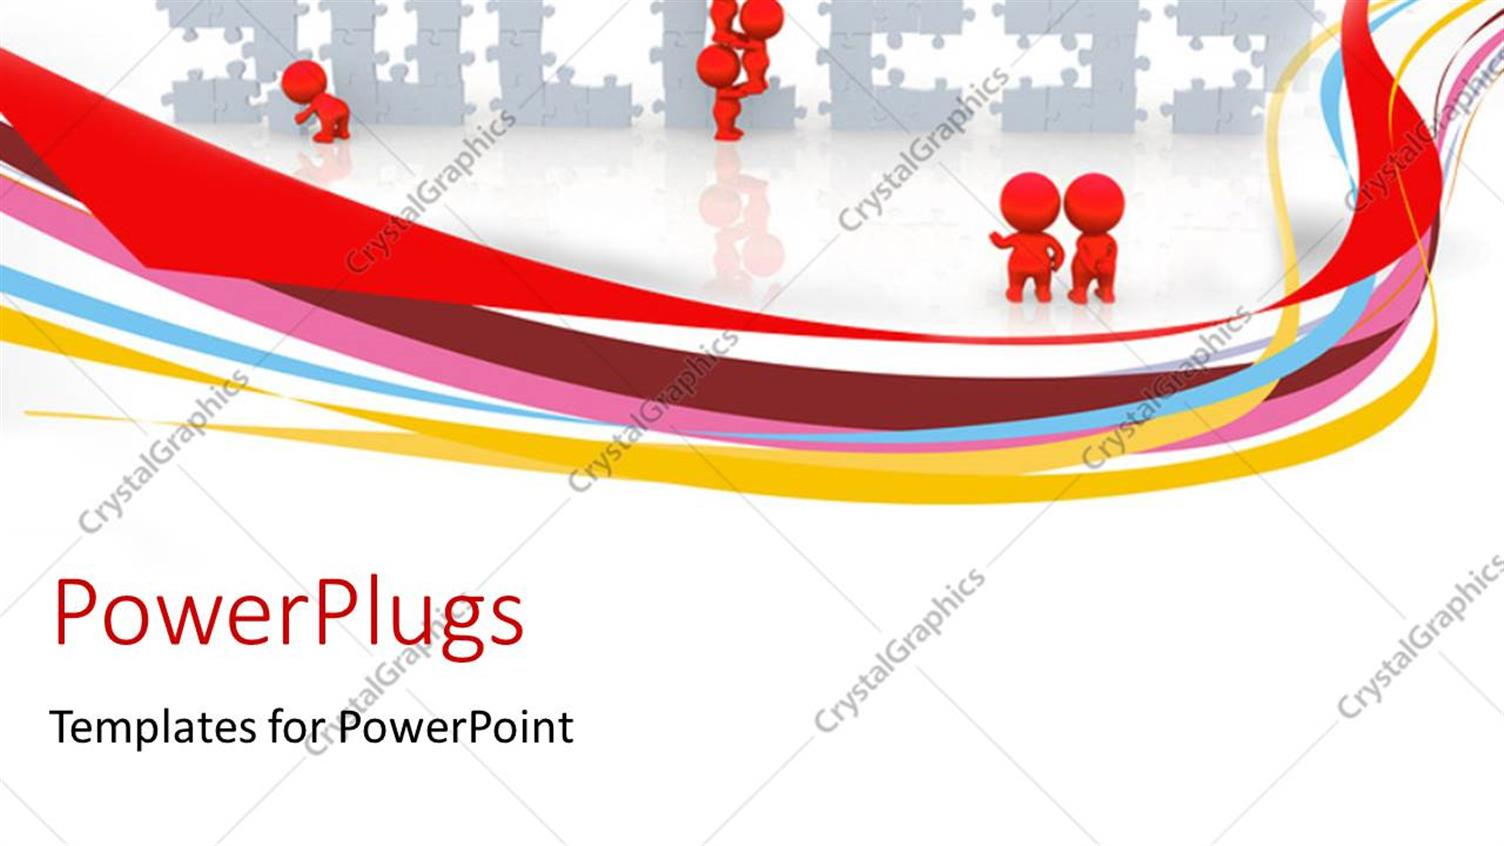 PowerPoint Template Displaying Depiction of Teamwork with Red Colored Men Putting Success Puzzle Together